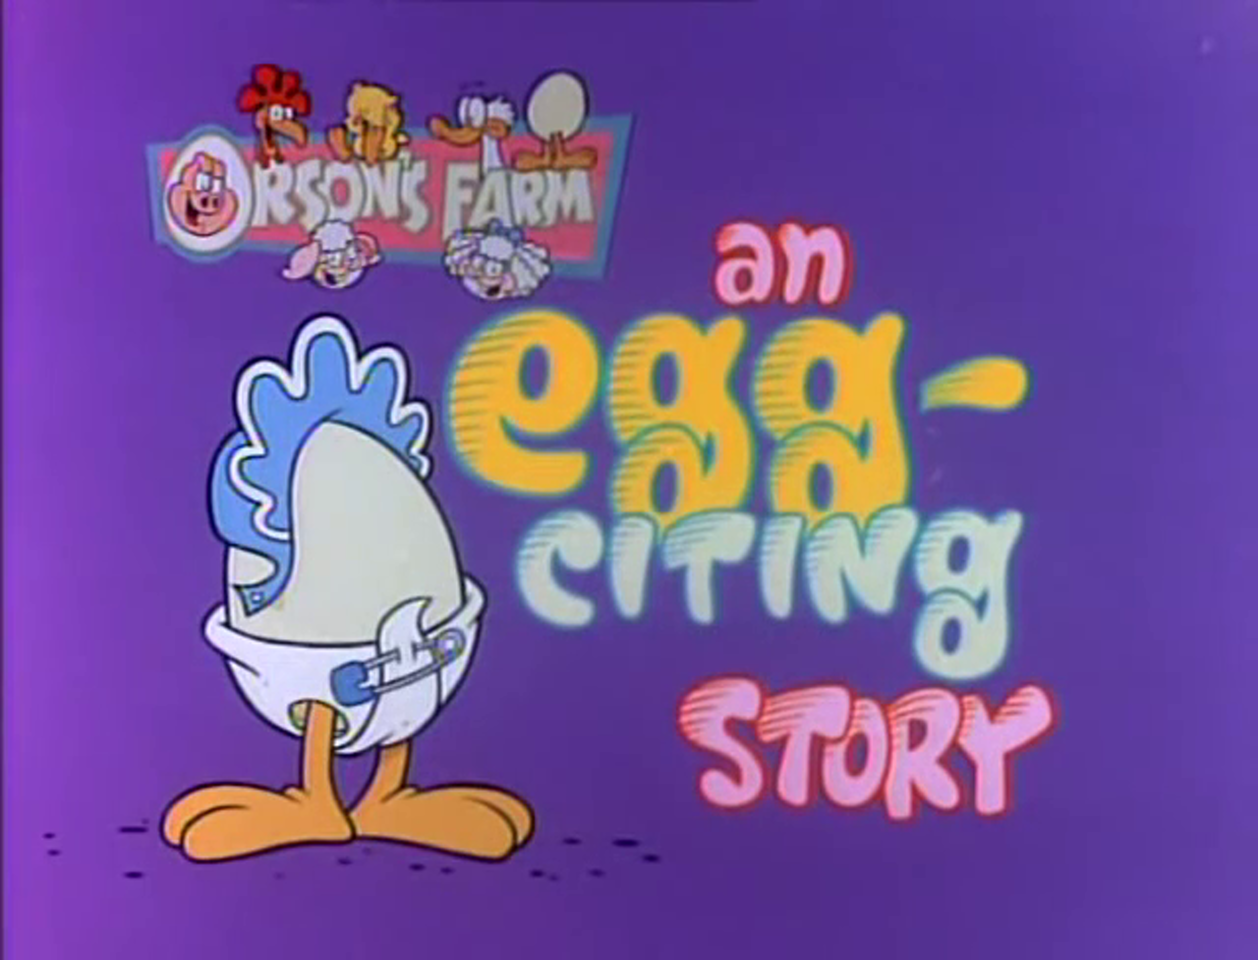 An Egg-Citing Story